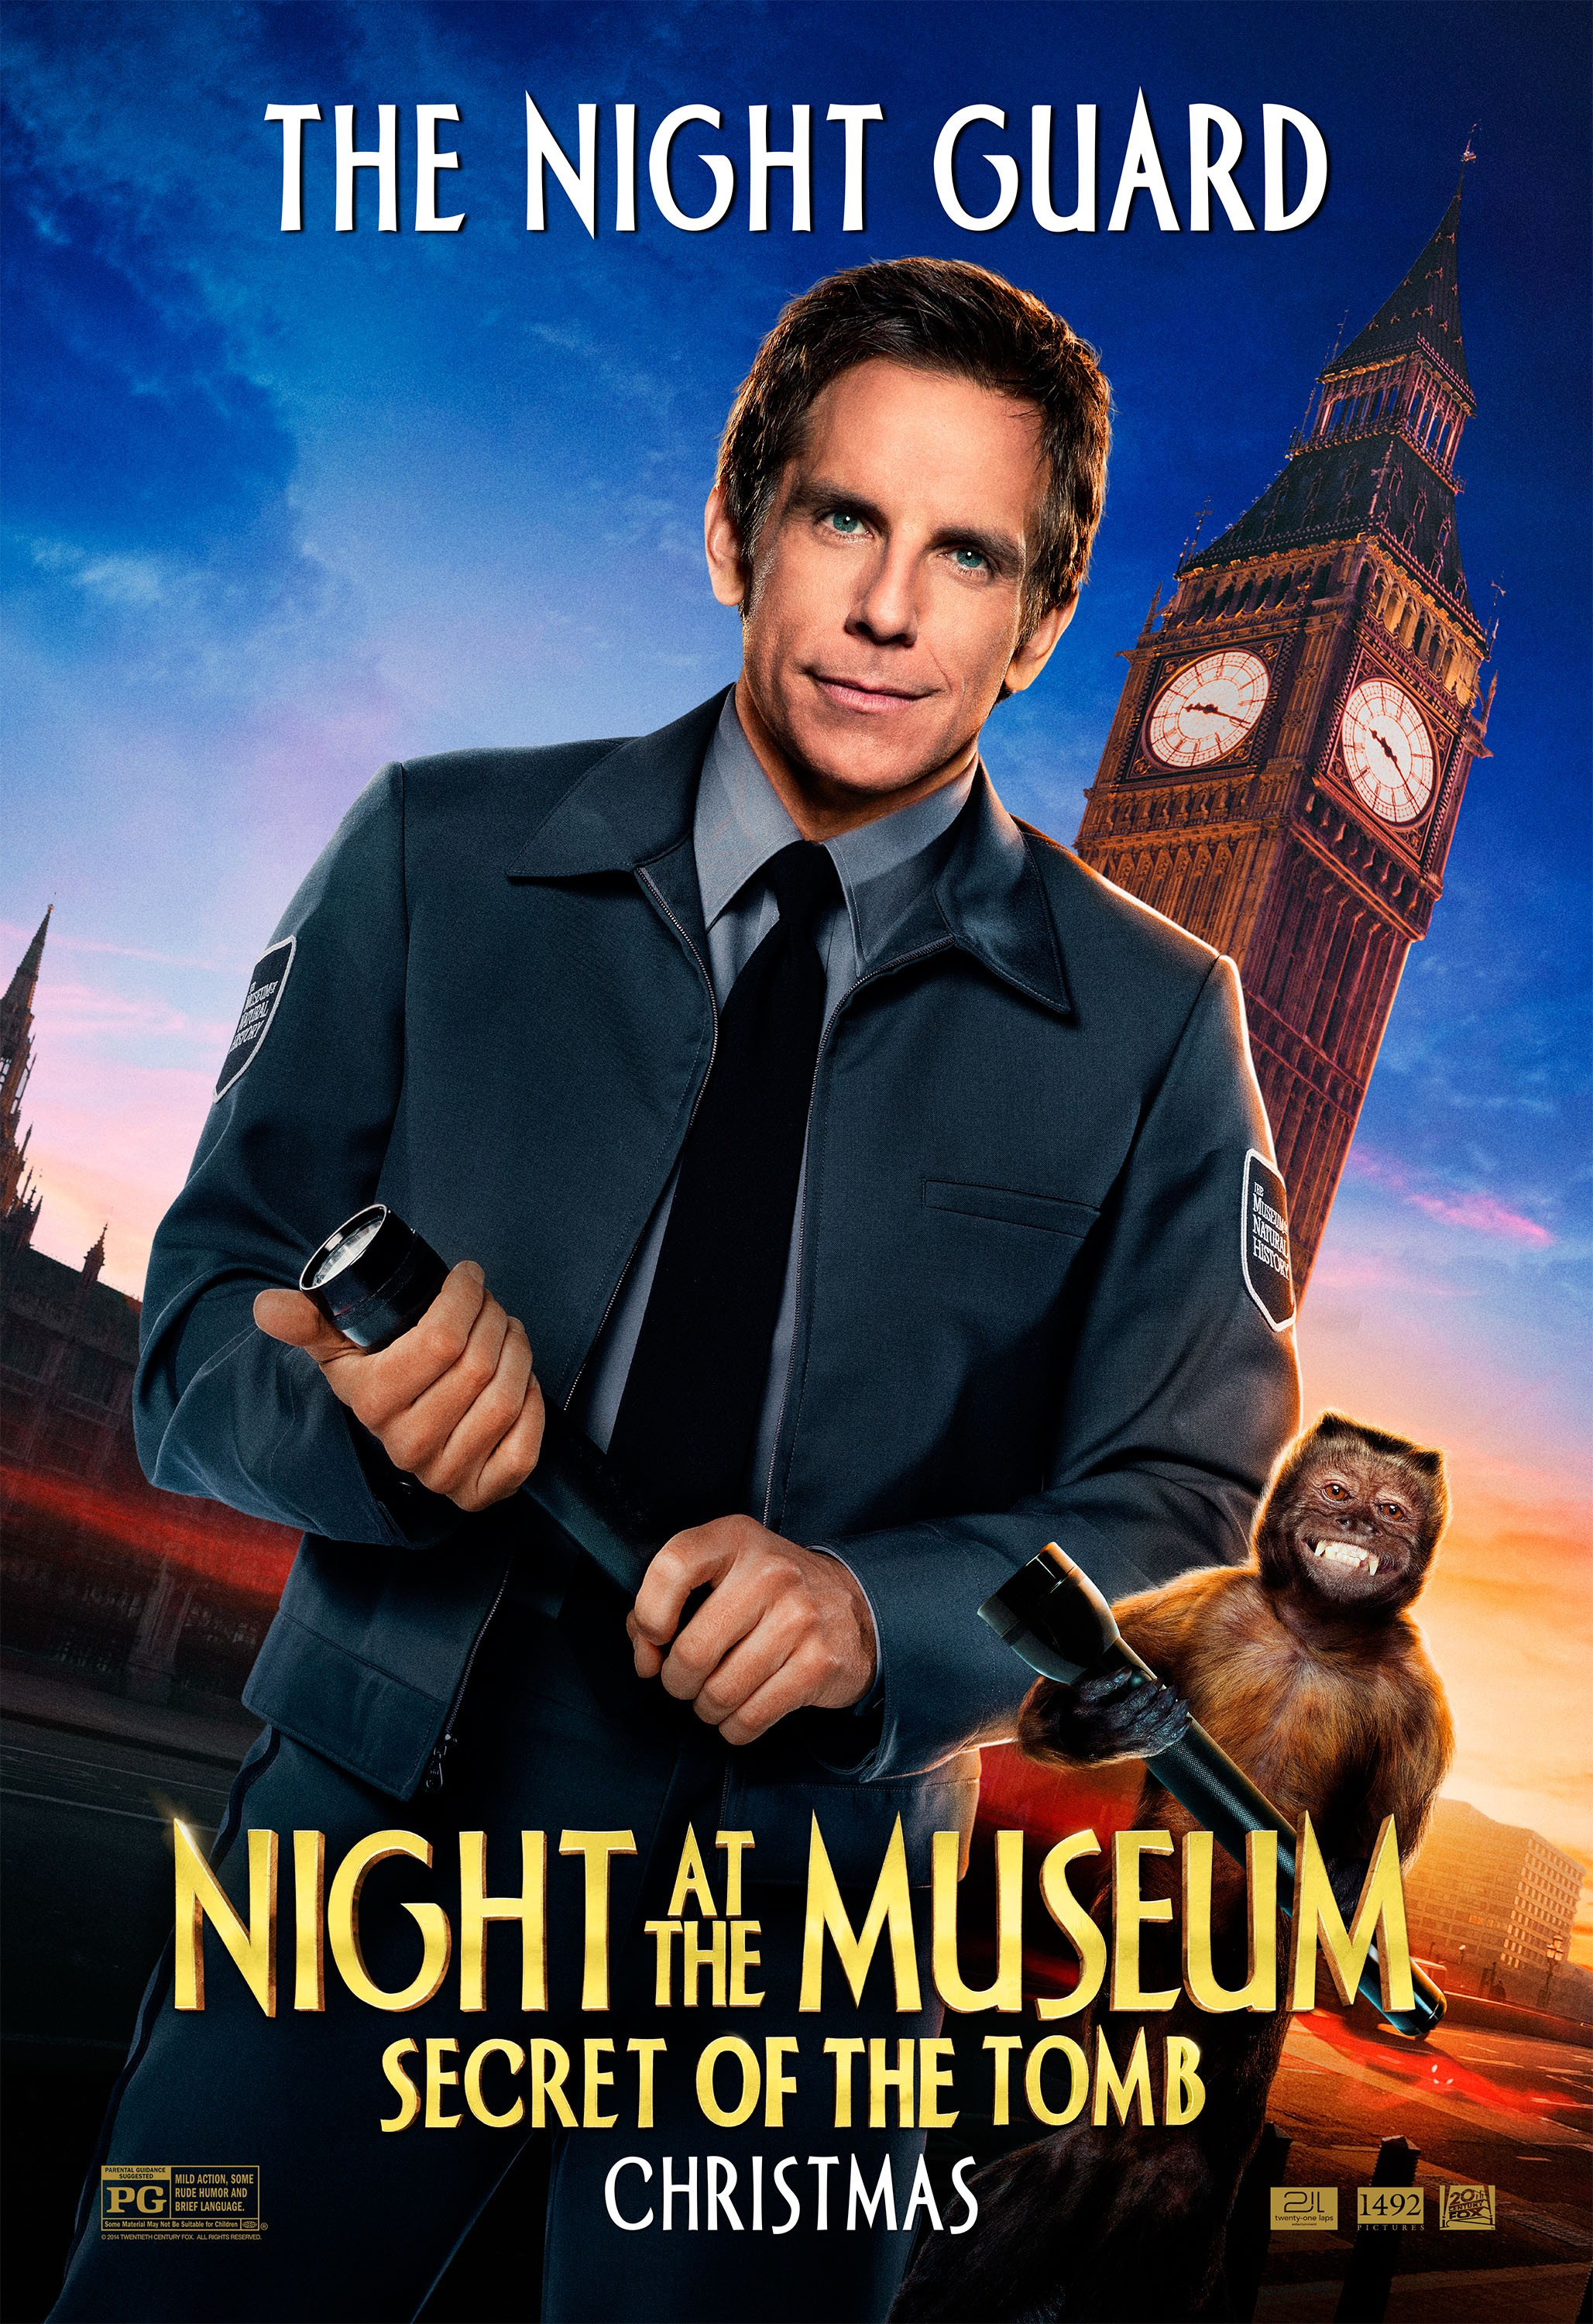 Night at the Museum Secret of the Tomb-PROMO CHAR-21NOVEMBRO2014-06